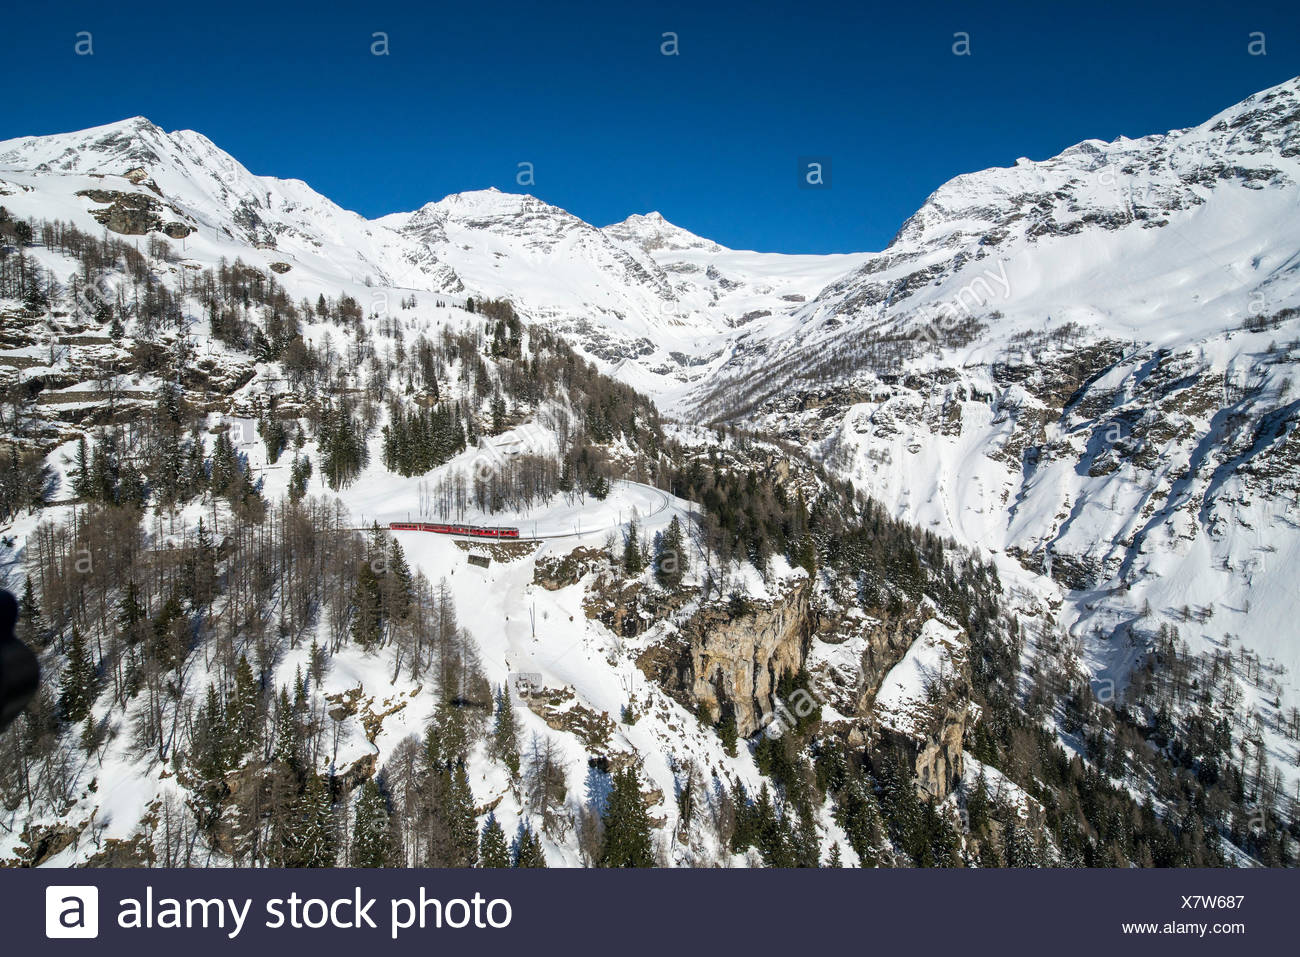 Aerial picture of the red Bernina train going to Bernina Pass in winter, Alp Grum, Poschiavo Valley, Canton Grigioni, Switzerland, - Stock Image